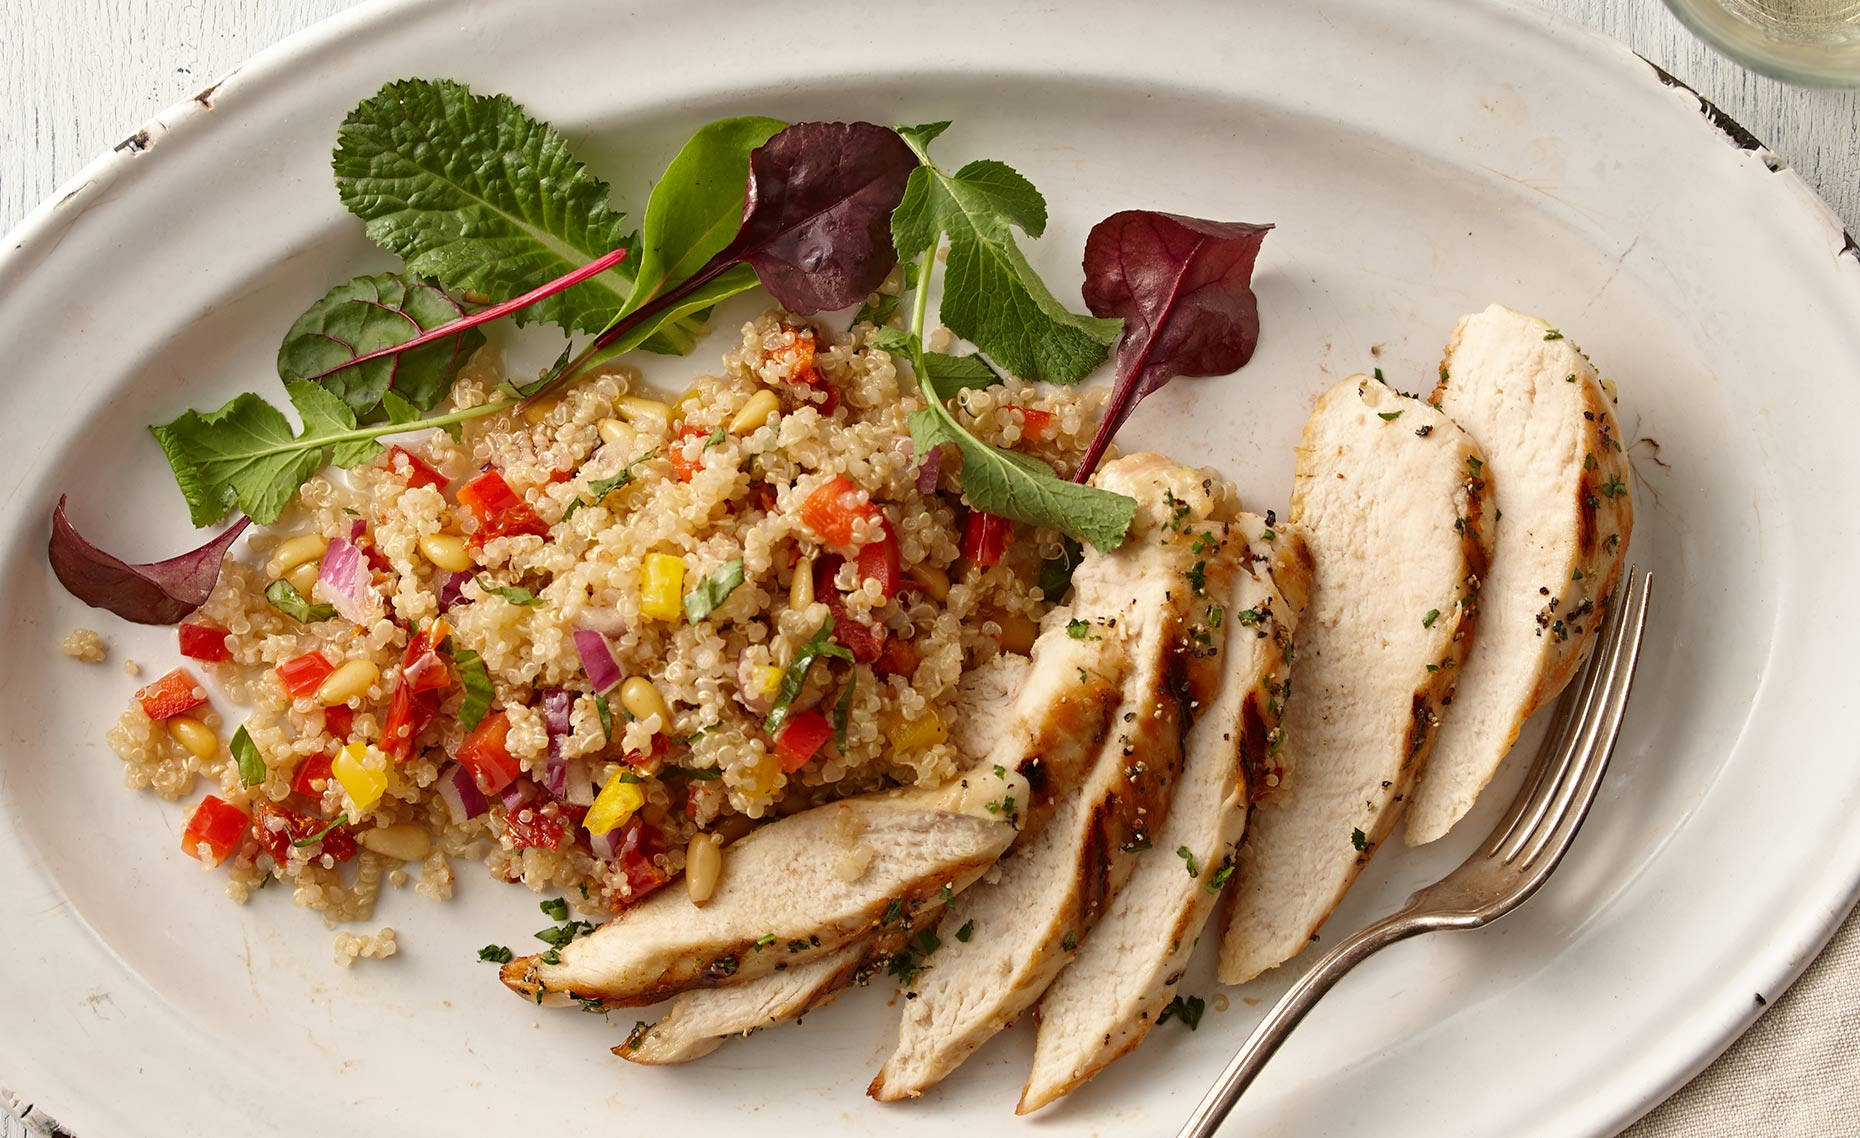 meat-photographers-chicken-grilled-sliced-couscous_29